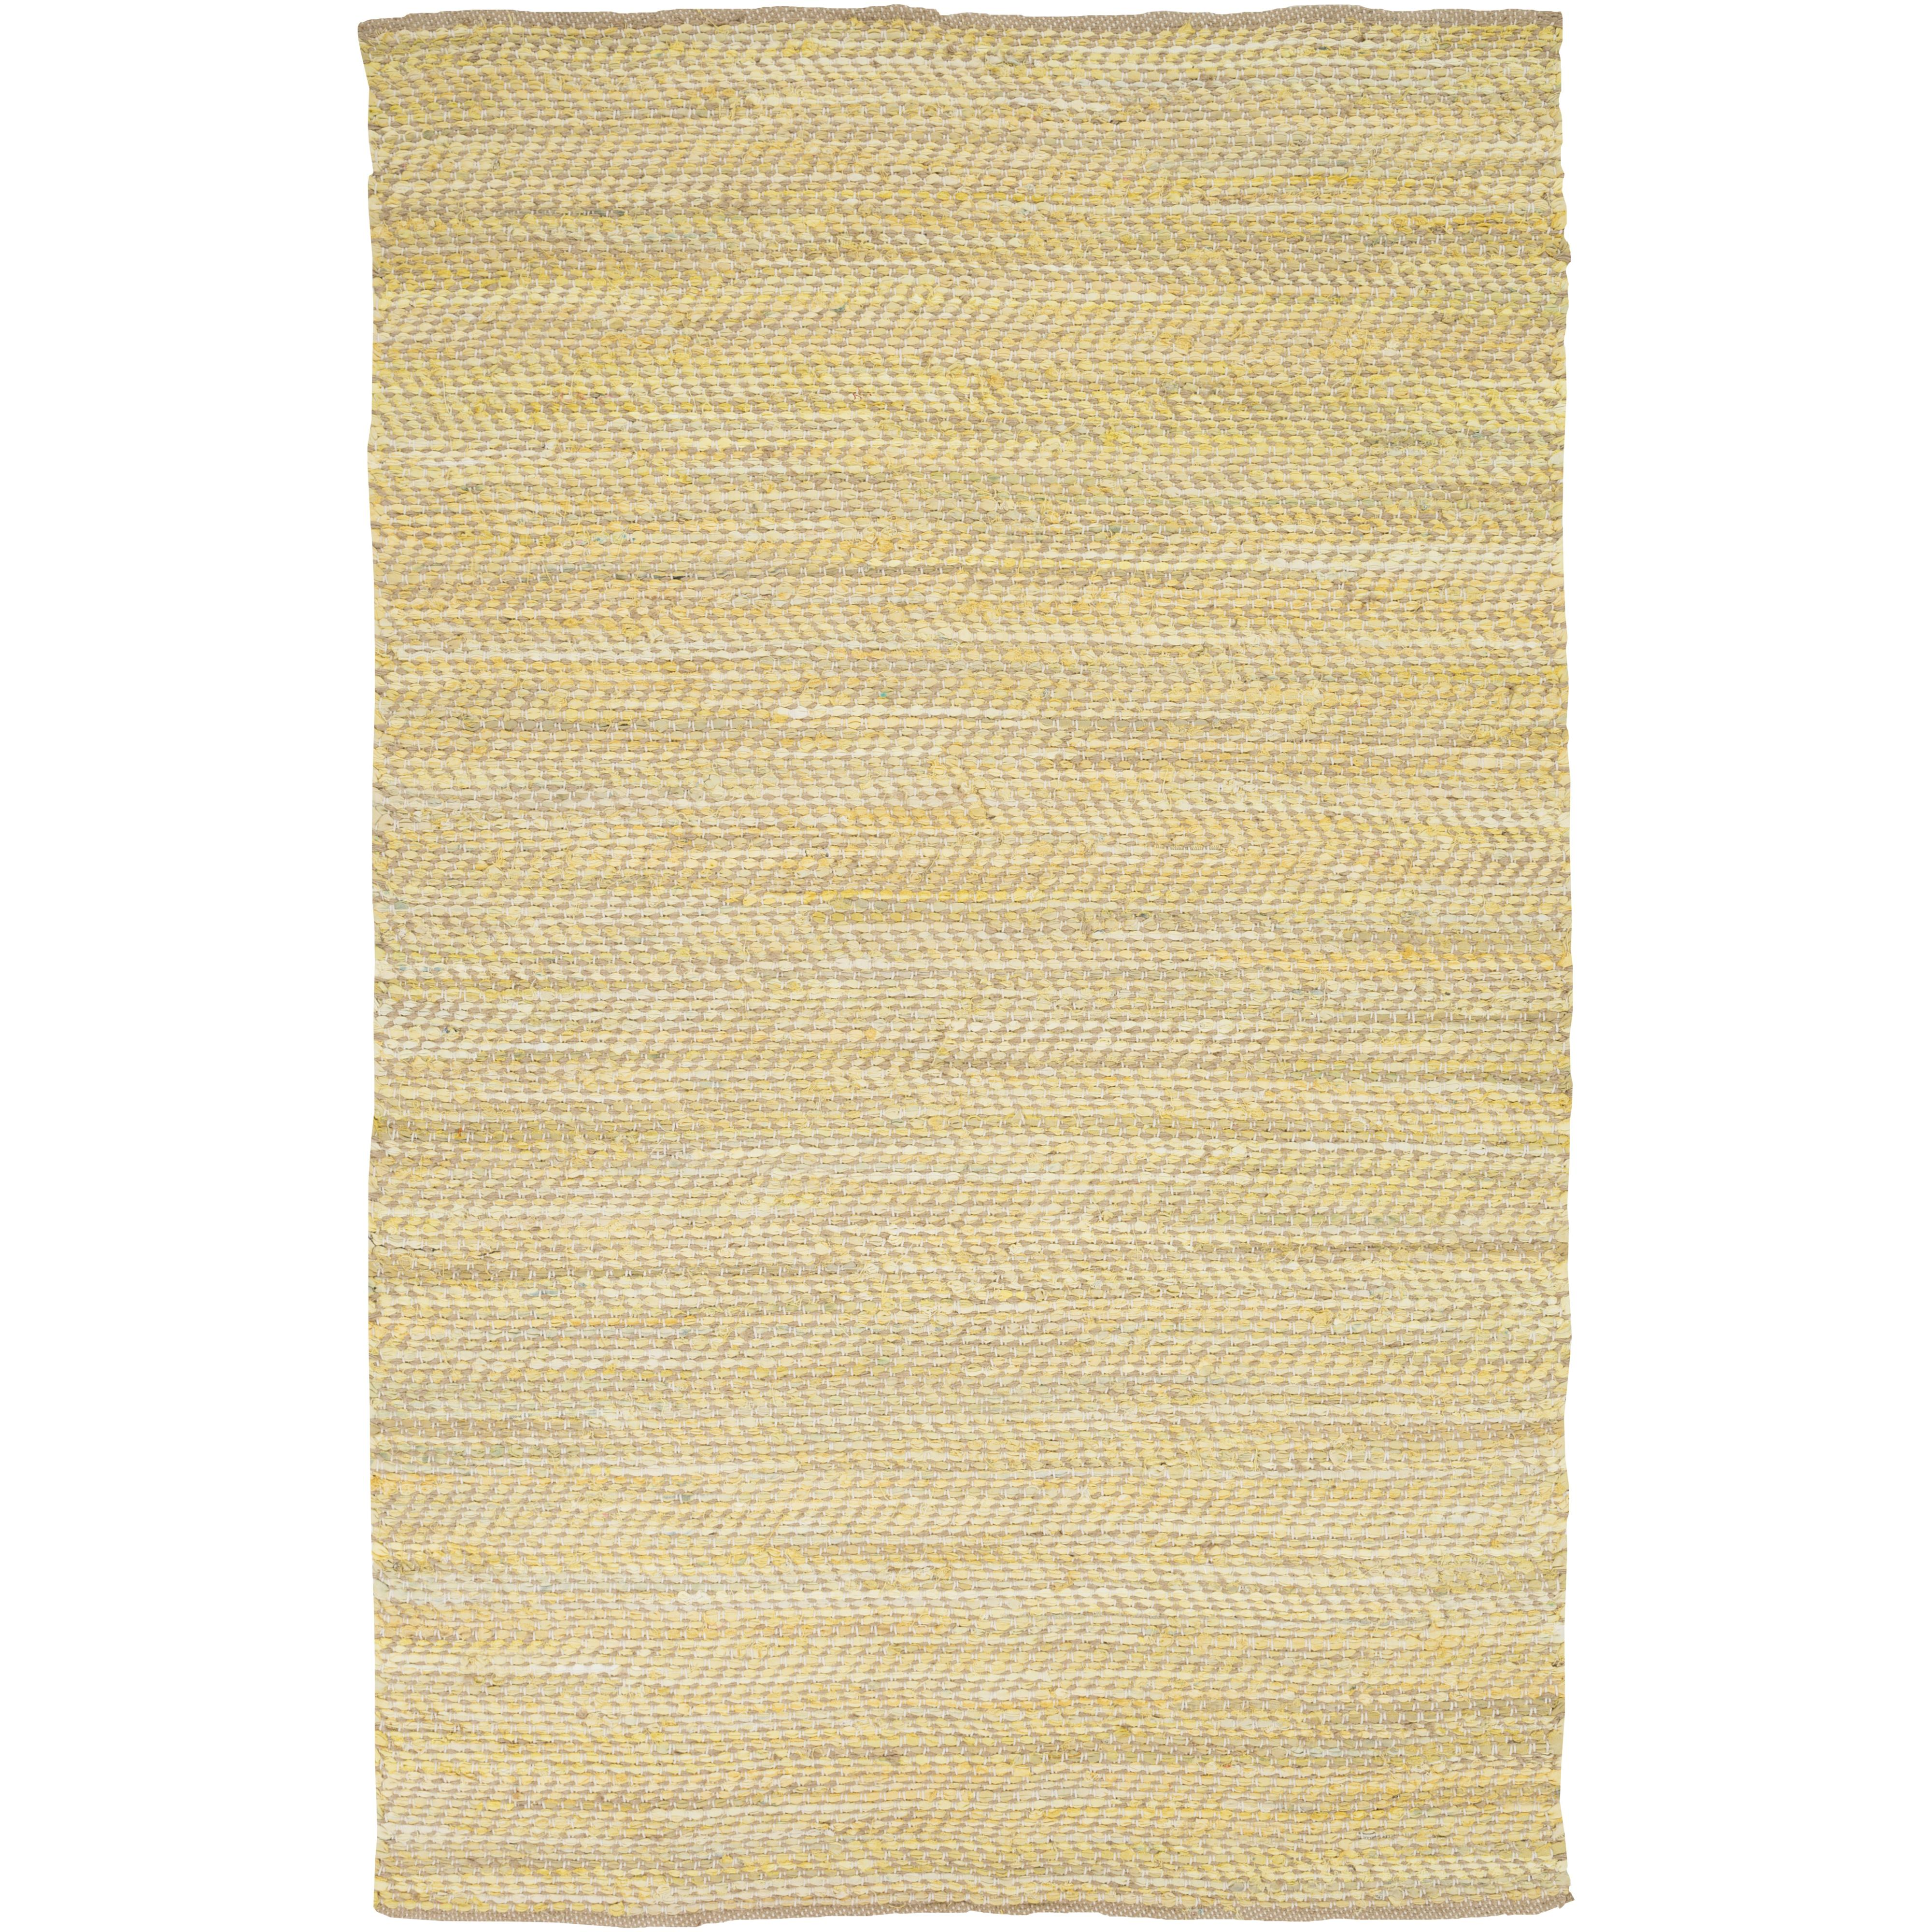 "Surya Rugs Fanore 3'6"" x 5'6"" - Item Number: FAN3007-3656"